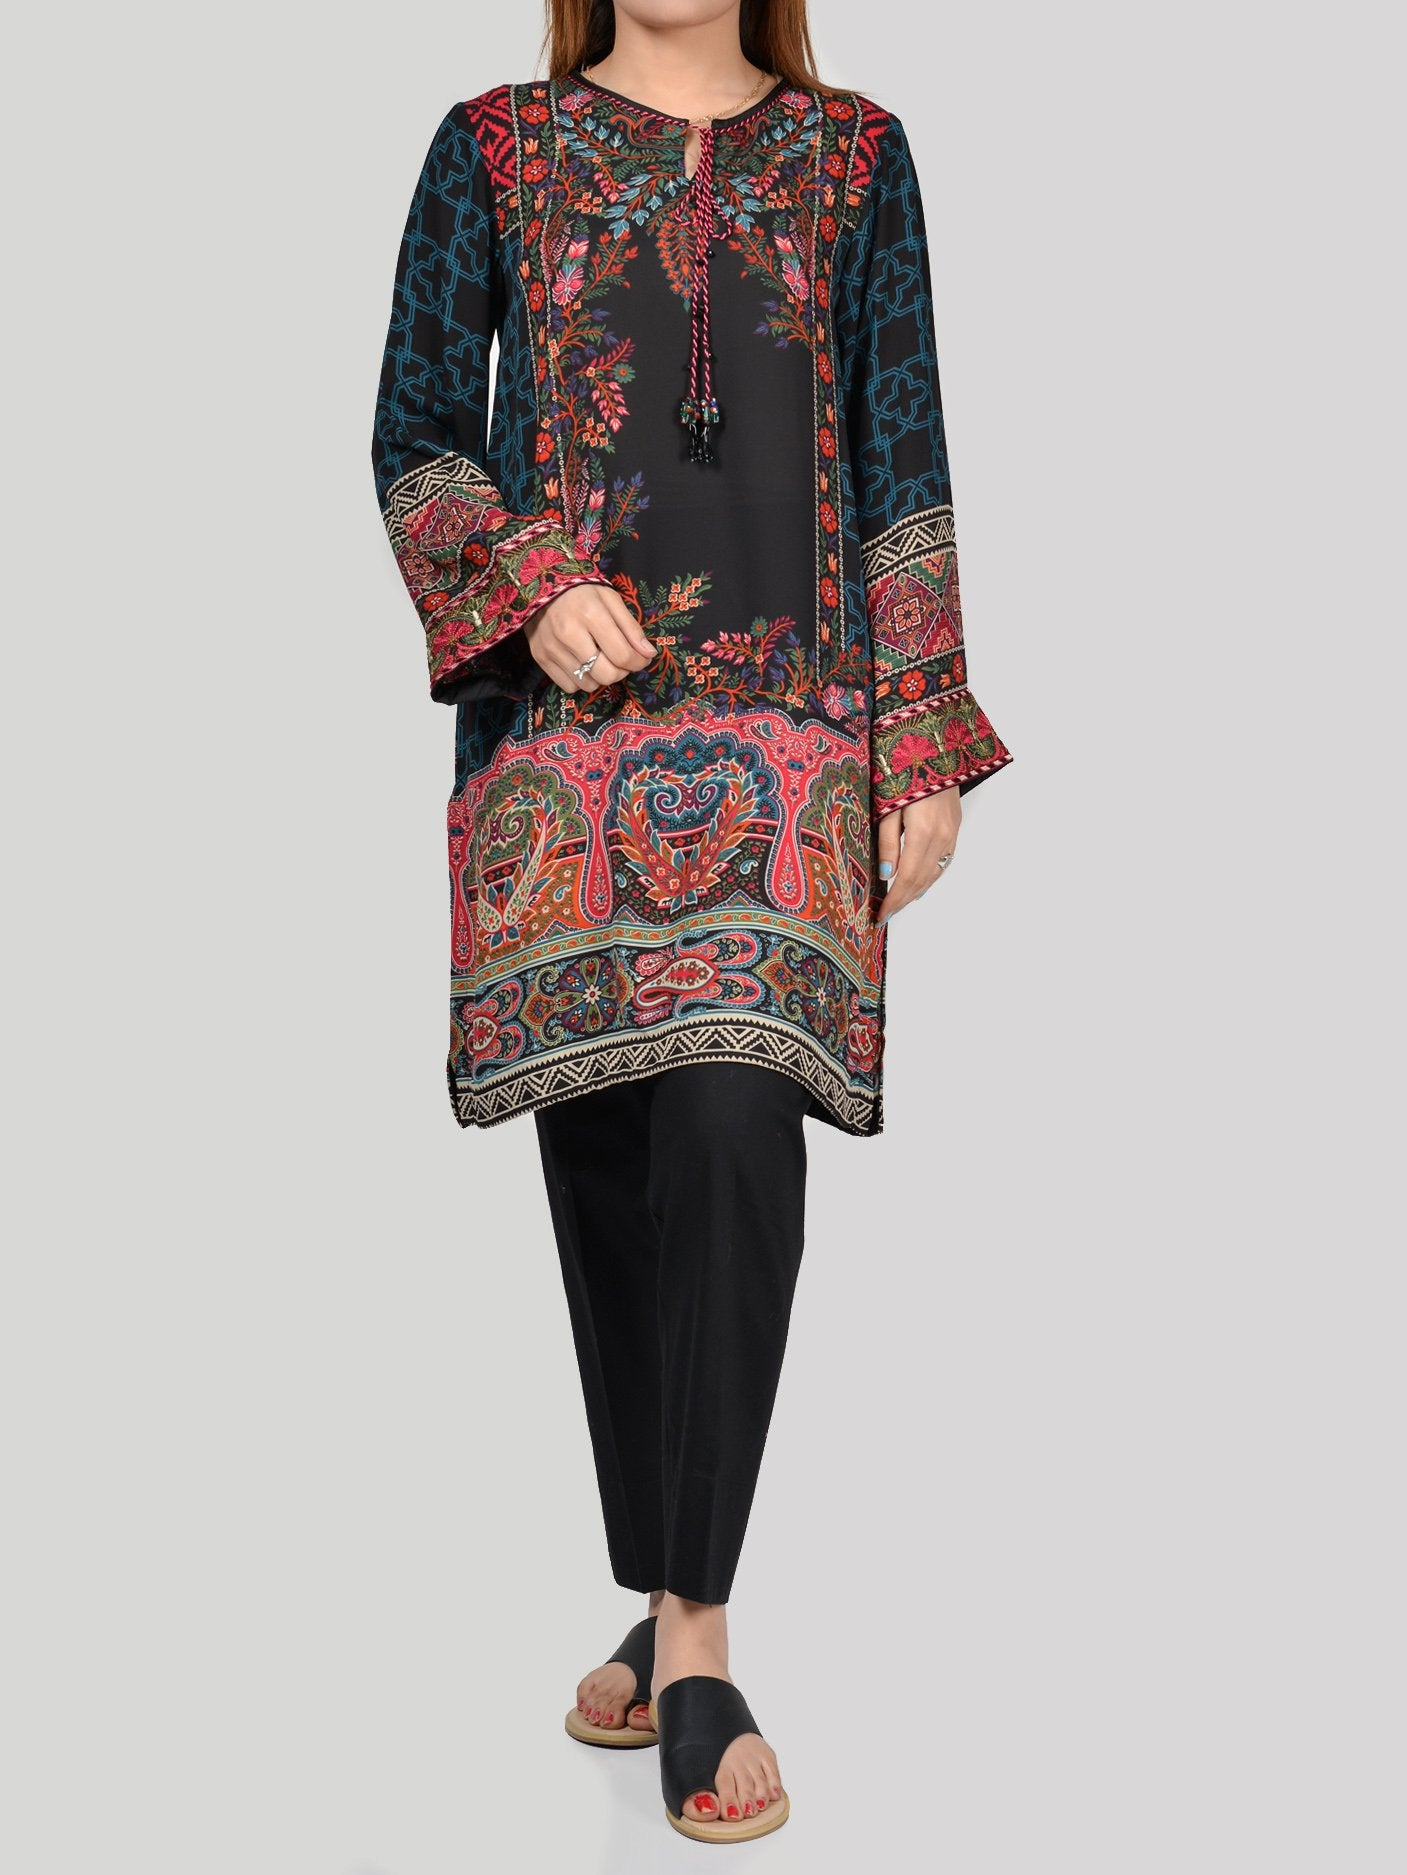 Embroidered Grip Shirt (P1005) by Limelight